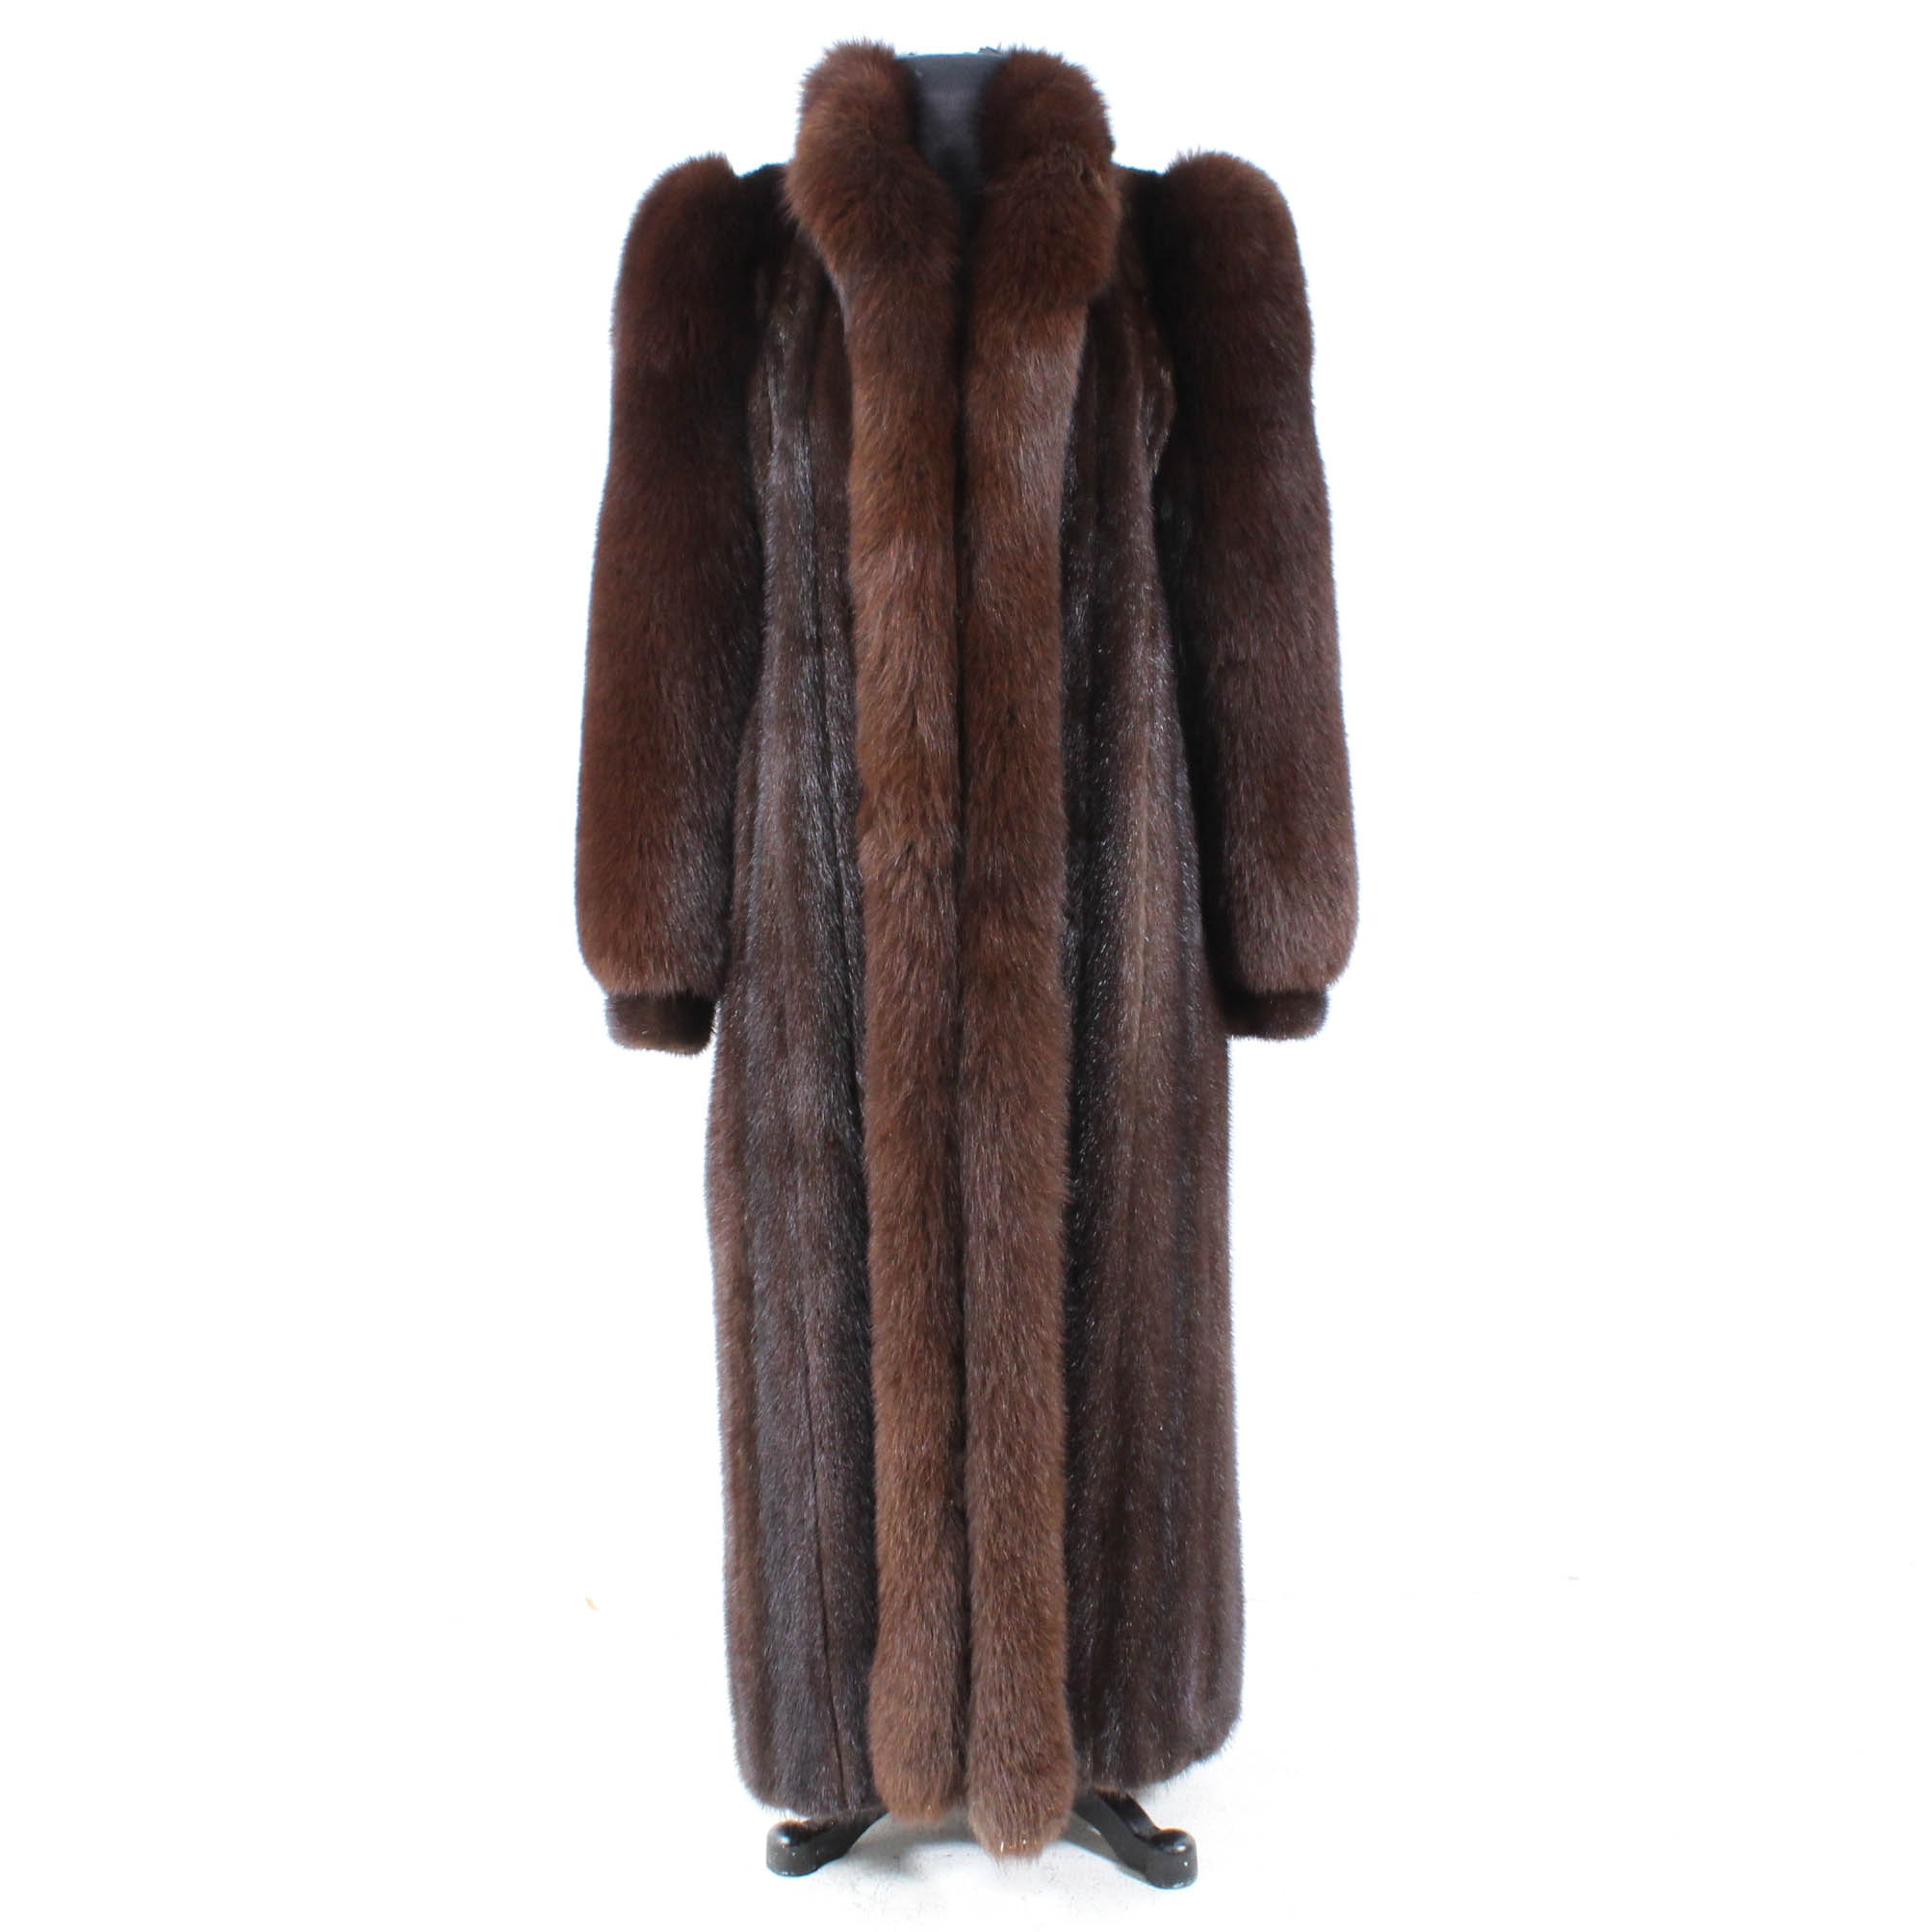 Mahogany Mink and Fox Fur Coat by John Tauben